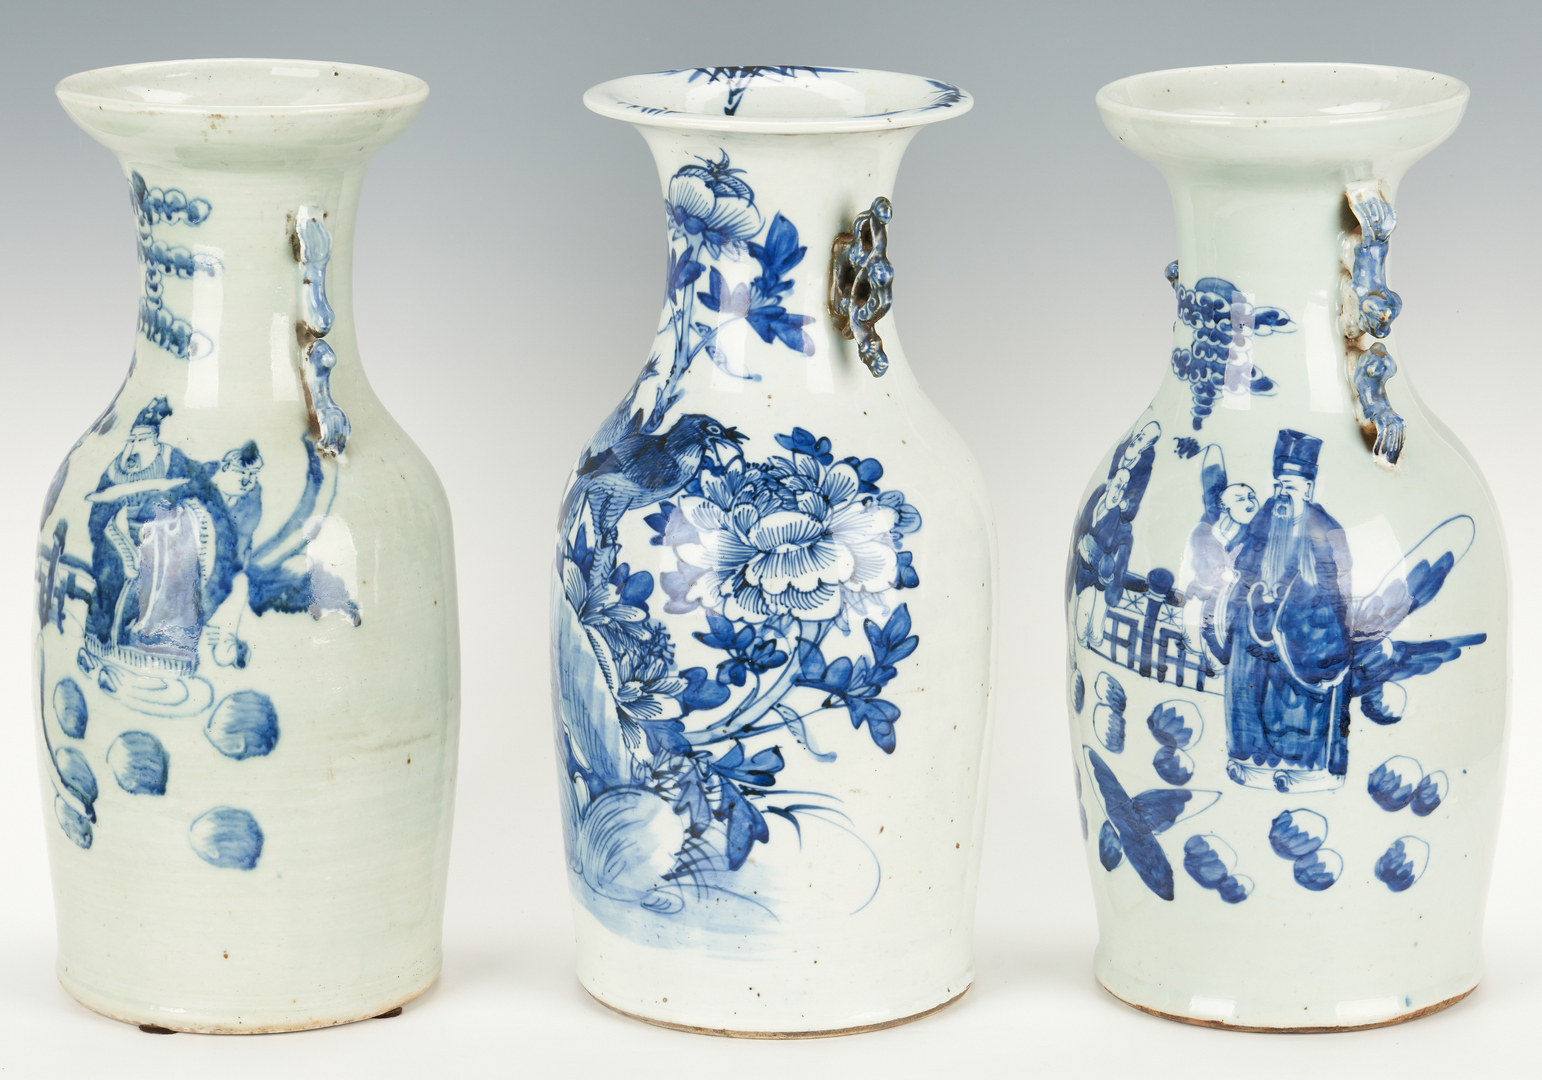 Lot 20: 3 Blue and White Porcelain Vases and Chinese Warrior Plate, 4 items